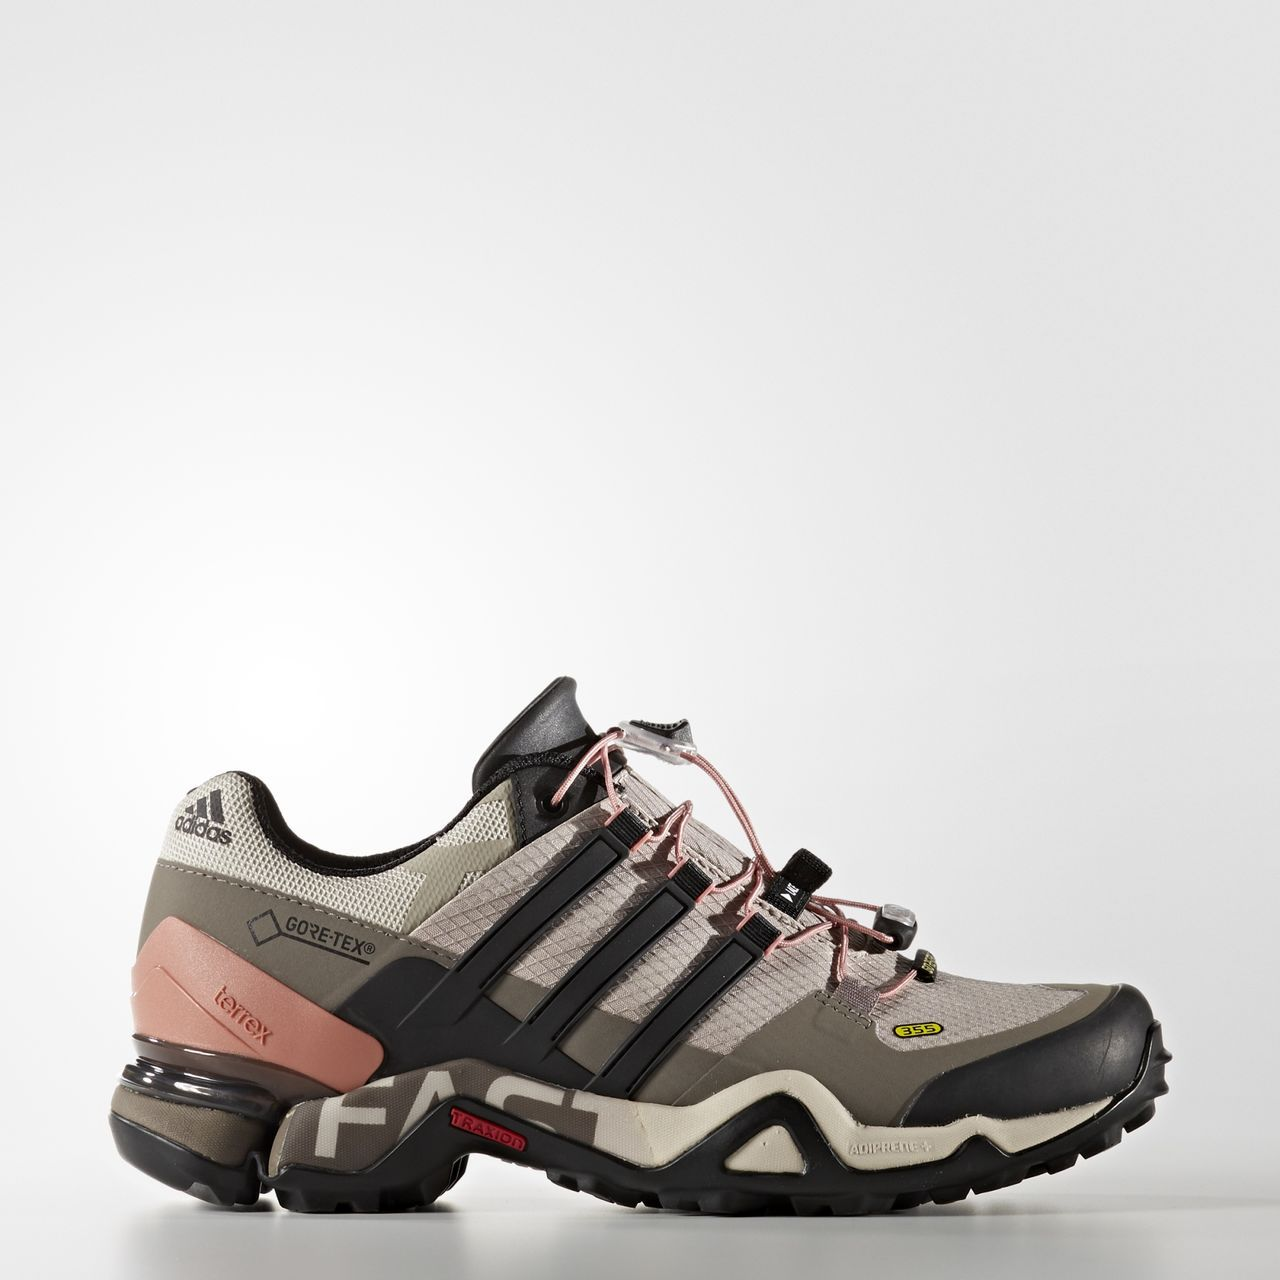 Adidas Terrex Fast R Gtx Shoes Sneakers Men Fashion Best Hiking Boots Mens Shoes Boots